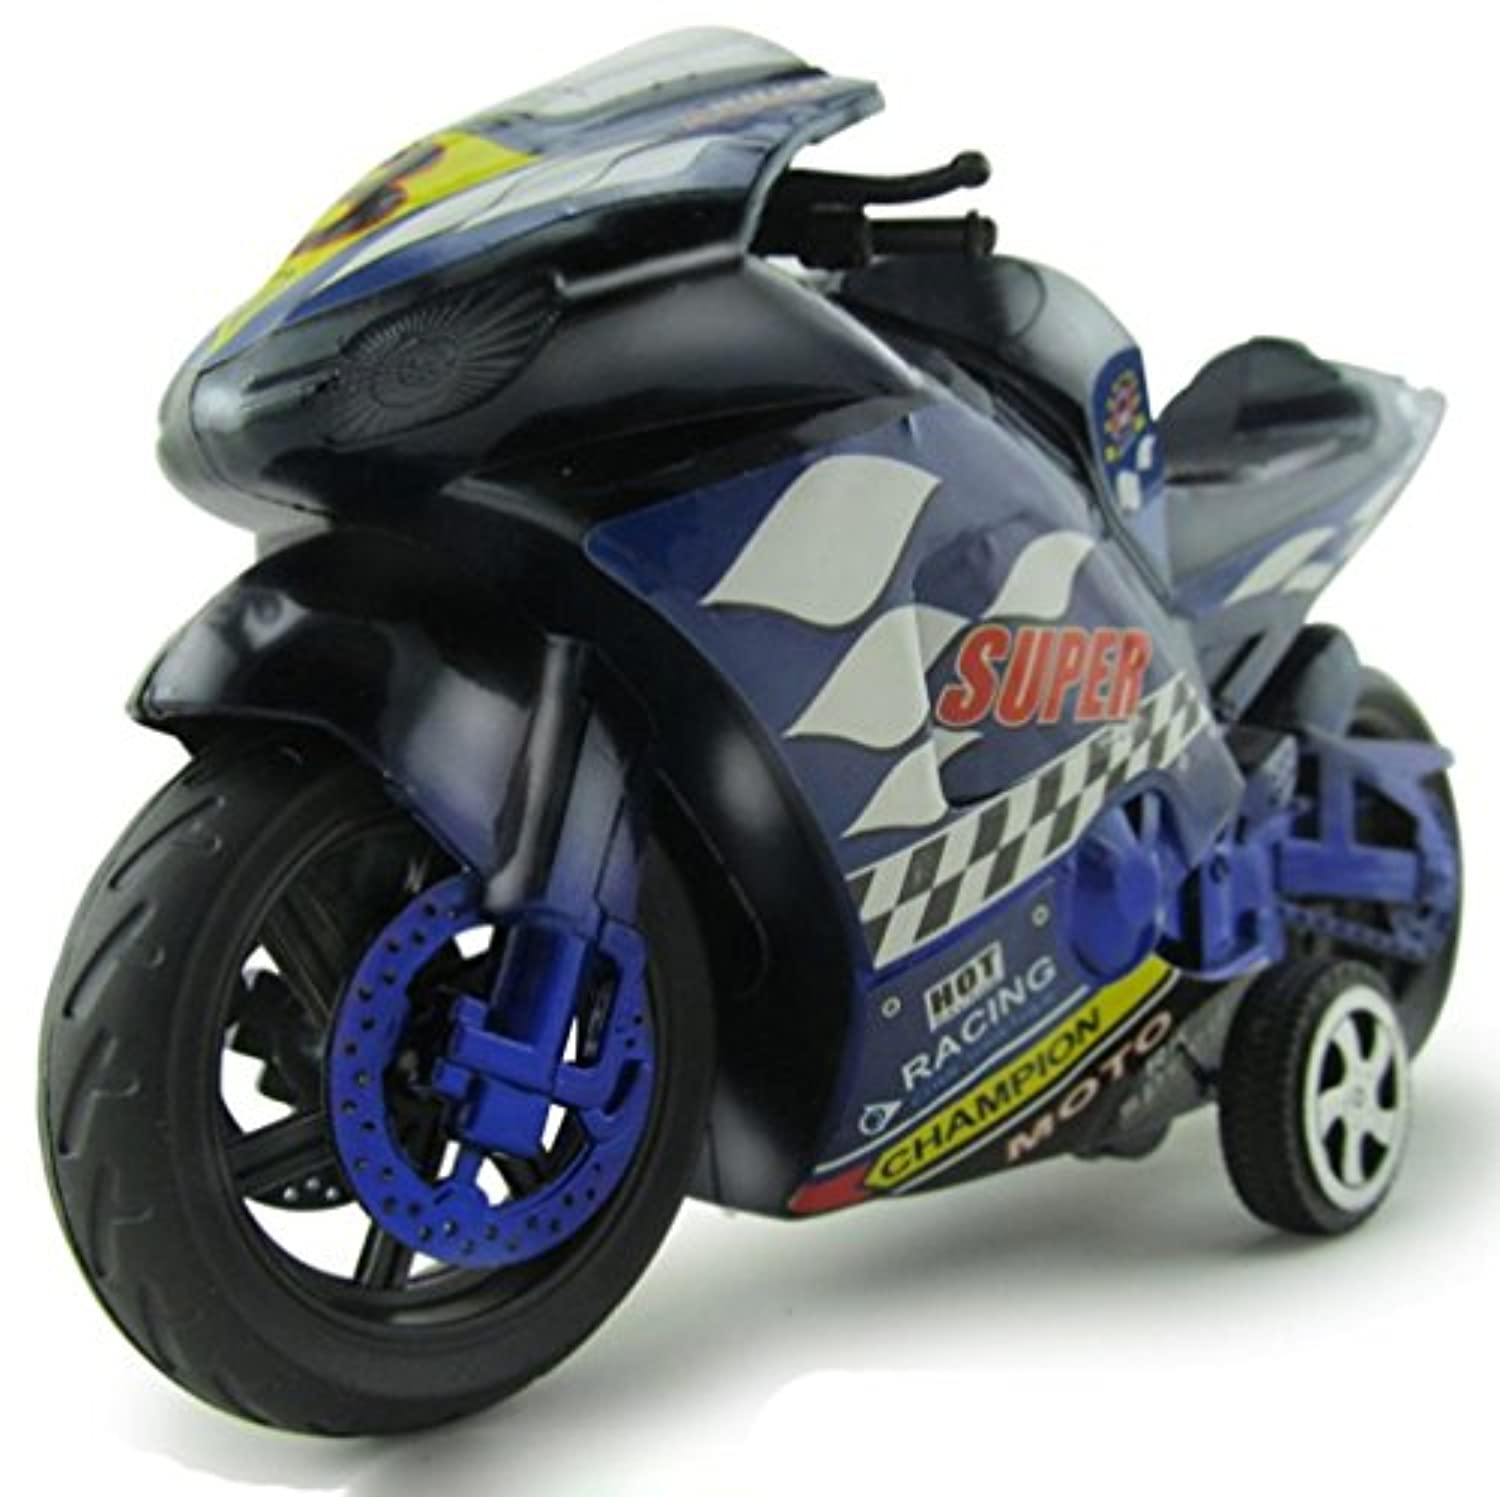 e-scenery 1 : 32 Friction Powered慣性Motorcycles With Hight速度おもちゃ子供の誕生日クリスマスプレゼントギフト(ランダムカラー)